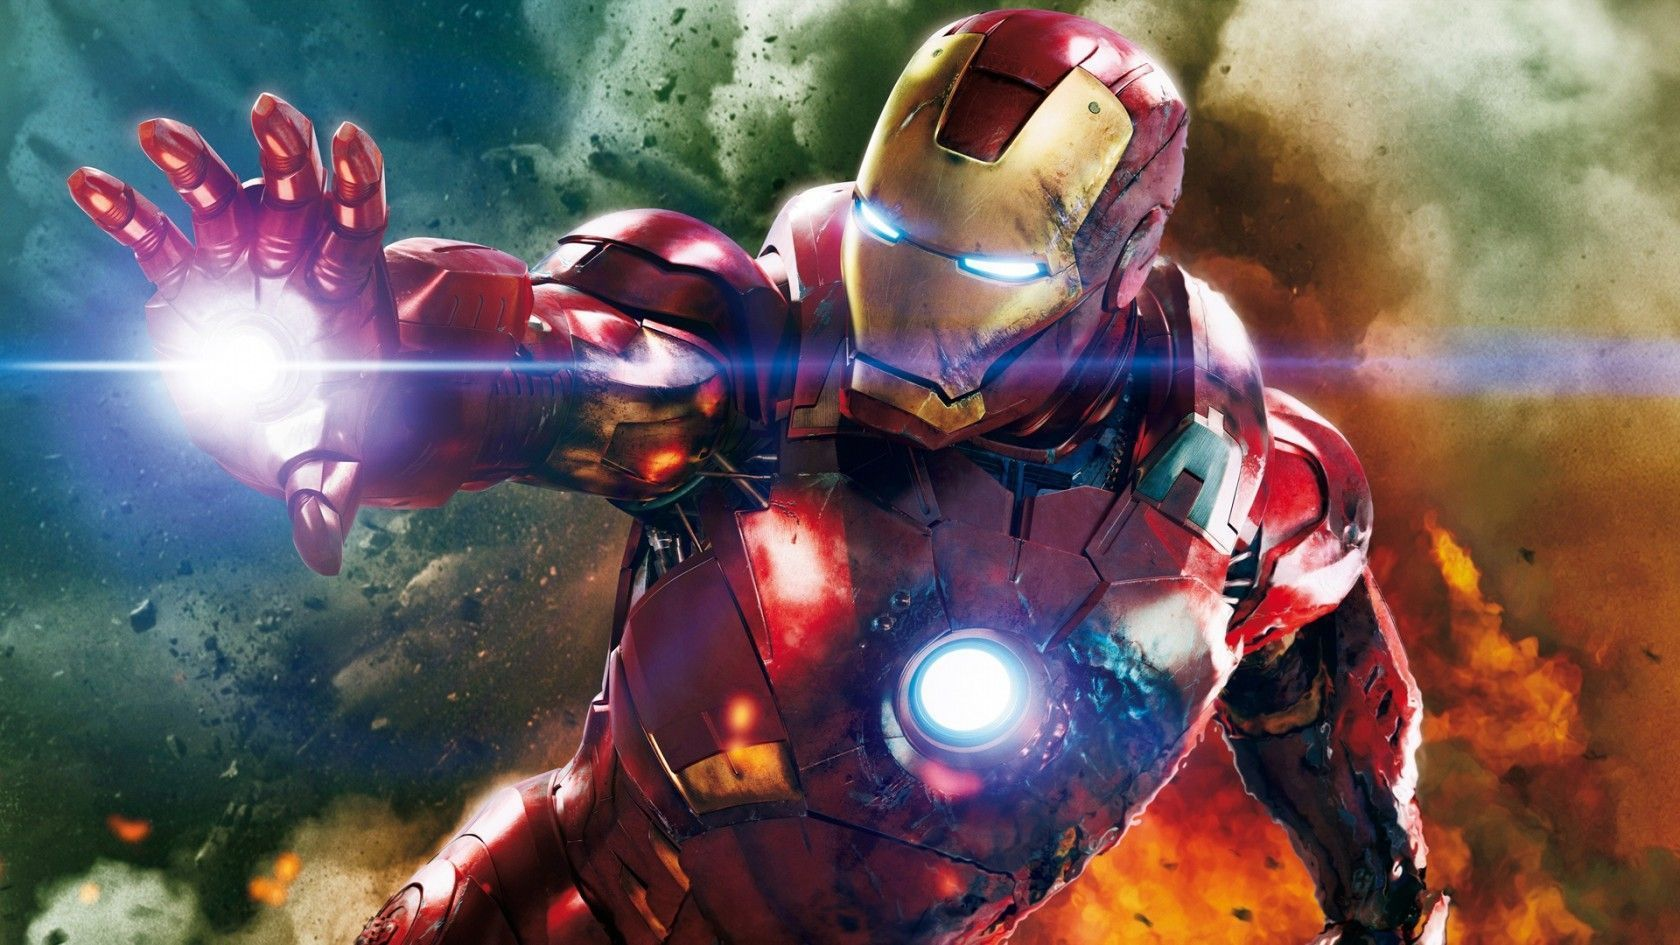 Iron Man Wallpapers Full HD